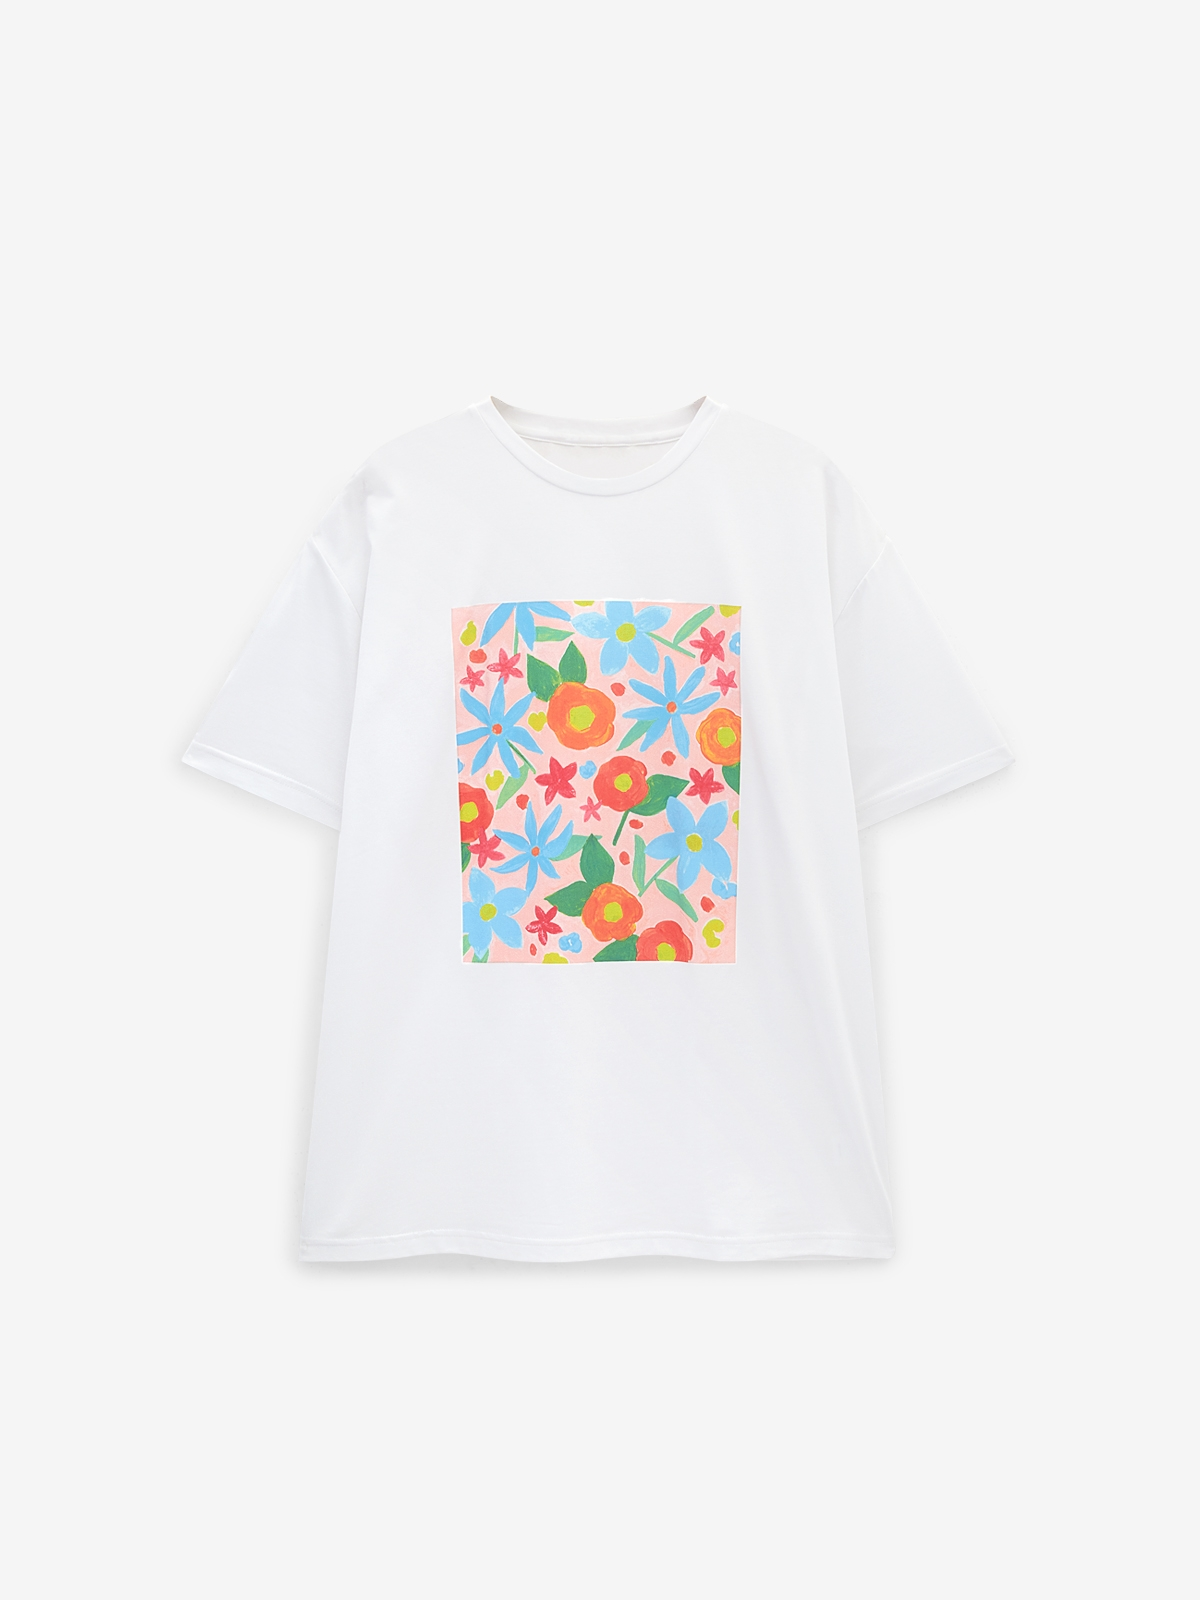 Floral Paint Style Graphic Tee White